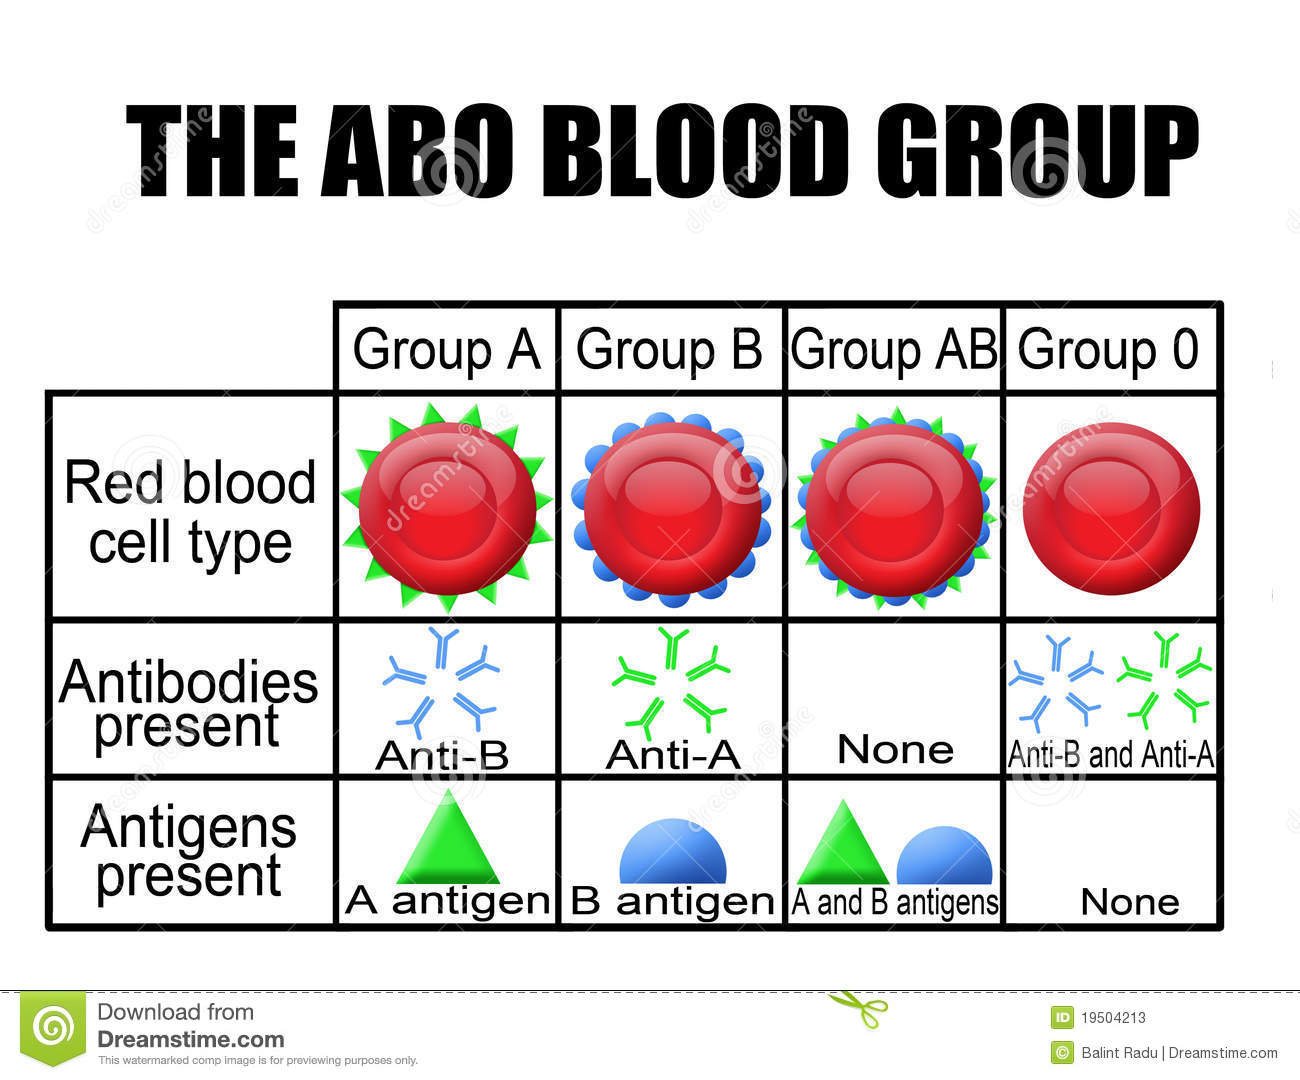 The ABO Blood Group Diagram Stock Photos - Image: 19504213